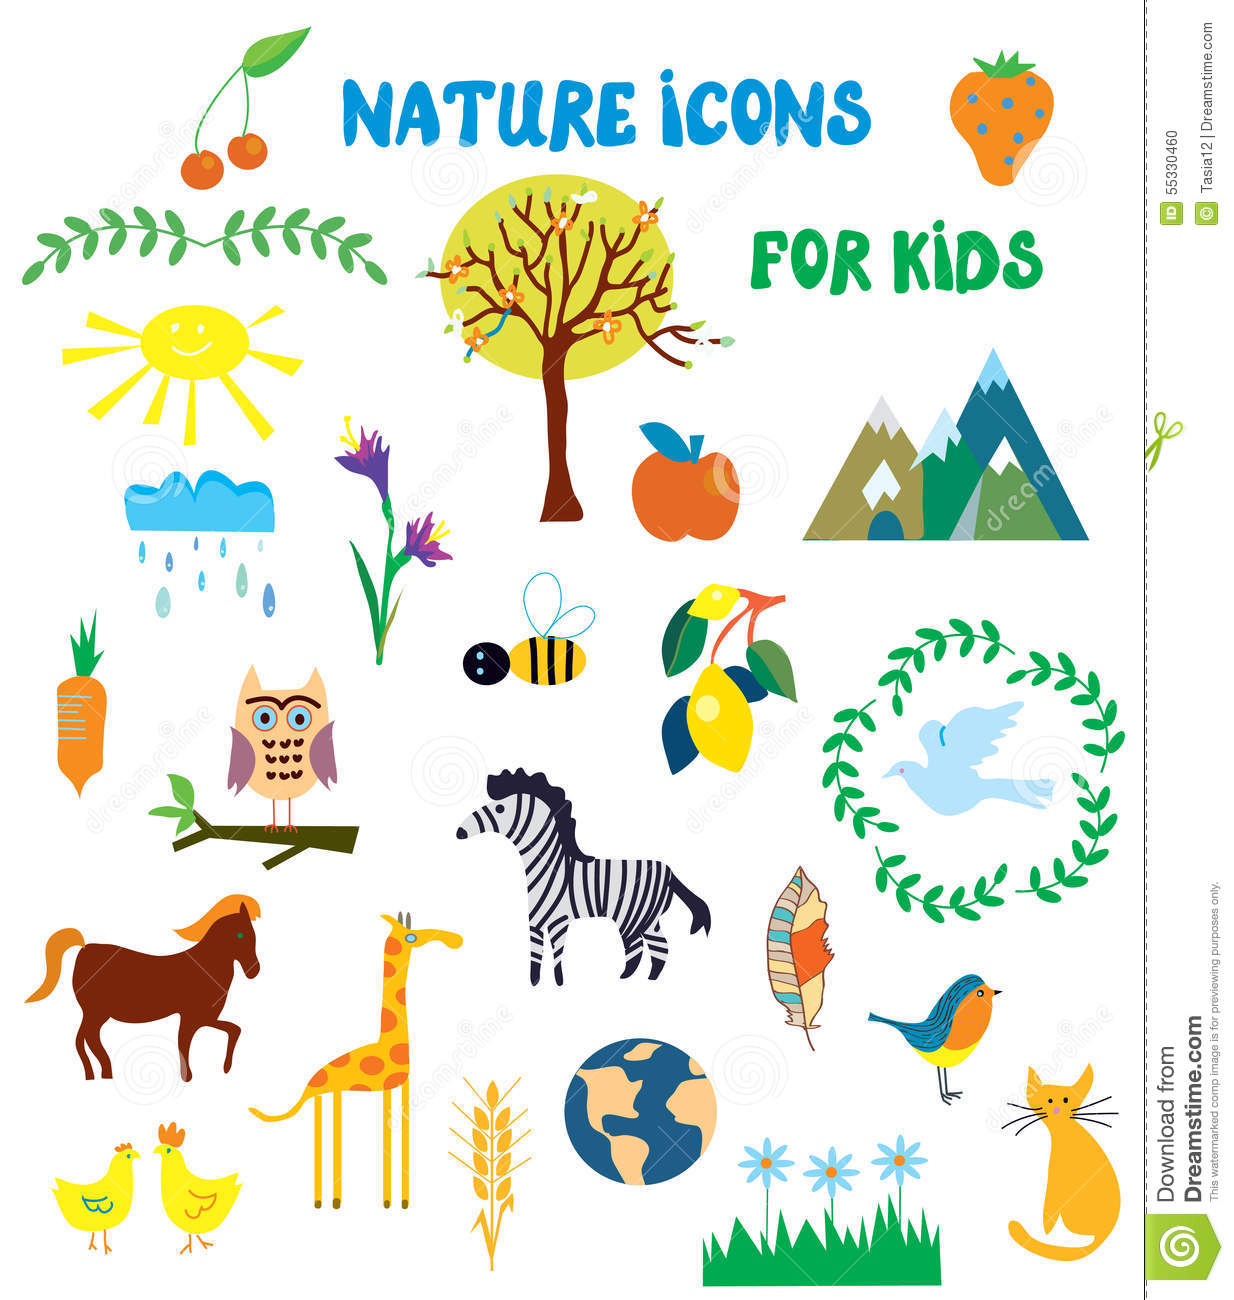 Worksheets About Nature For Kids